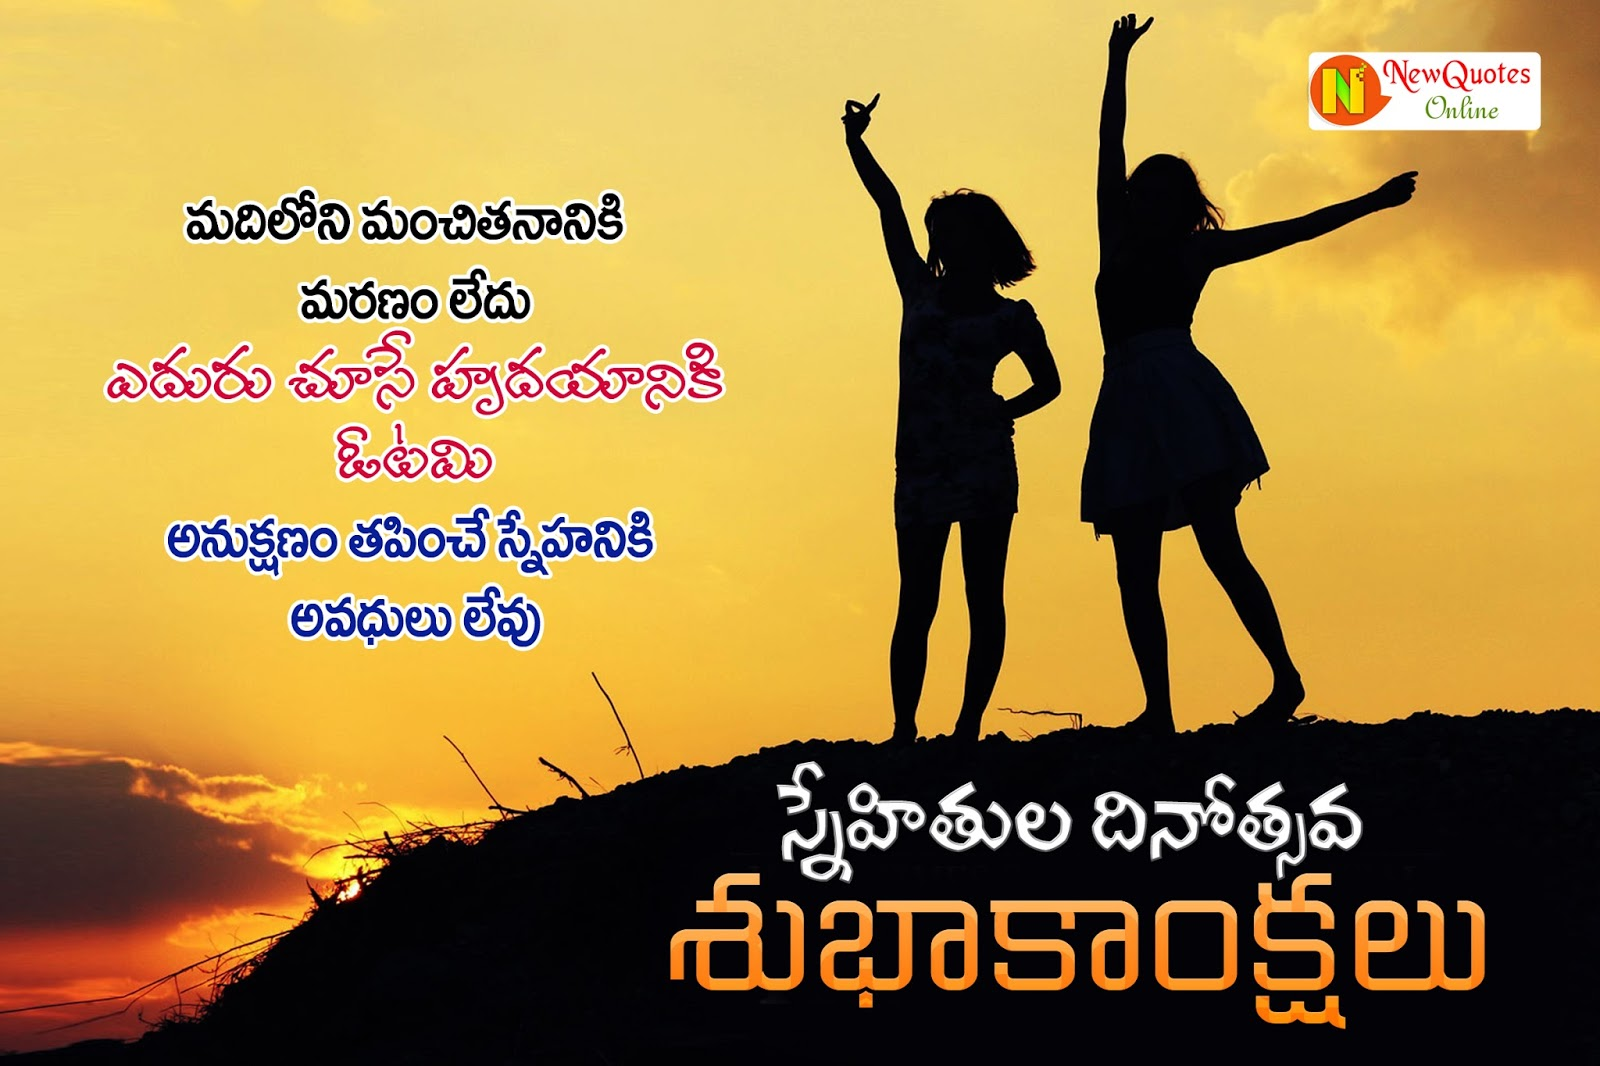 2017 happy friendship day backgrounds hd images pictures happy friendship day sayings quotes wishes greetings in kristyandbryce Image collections